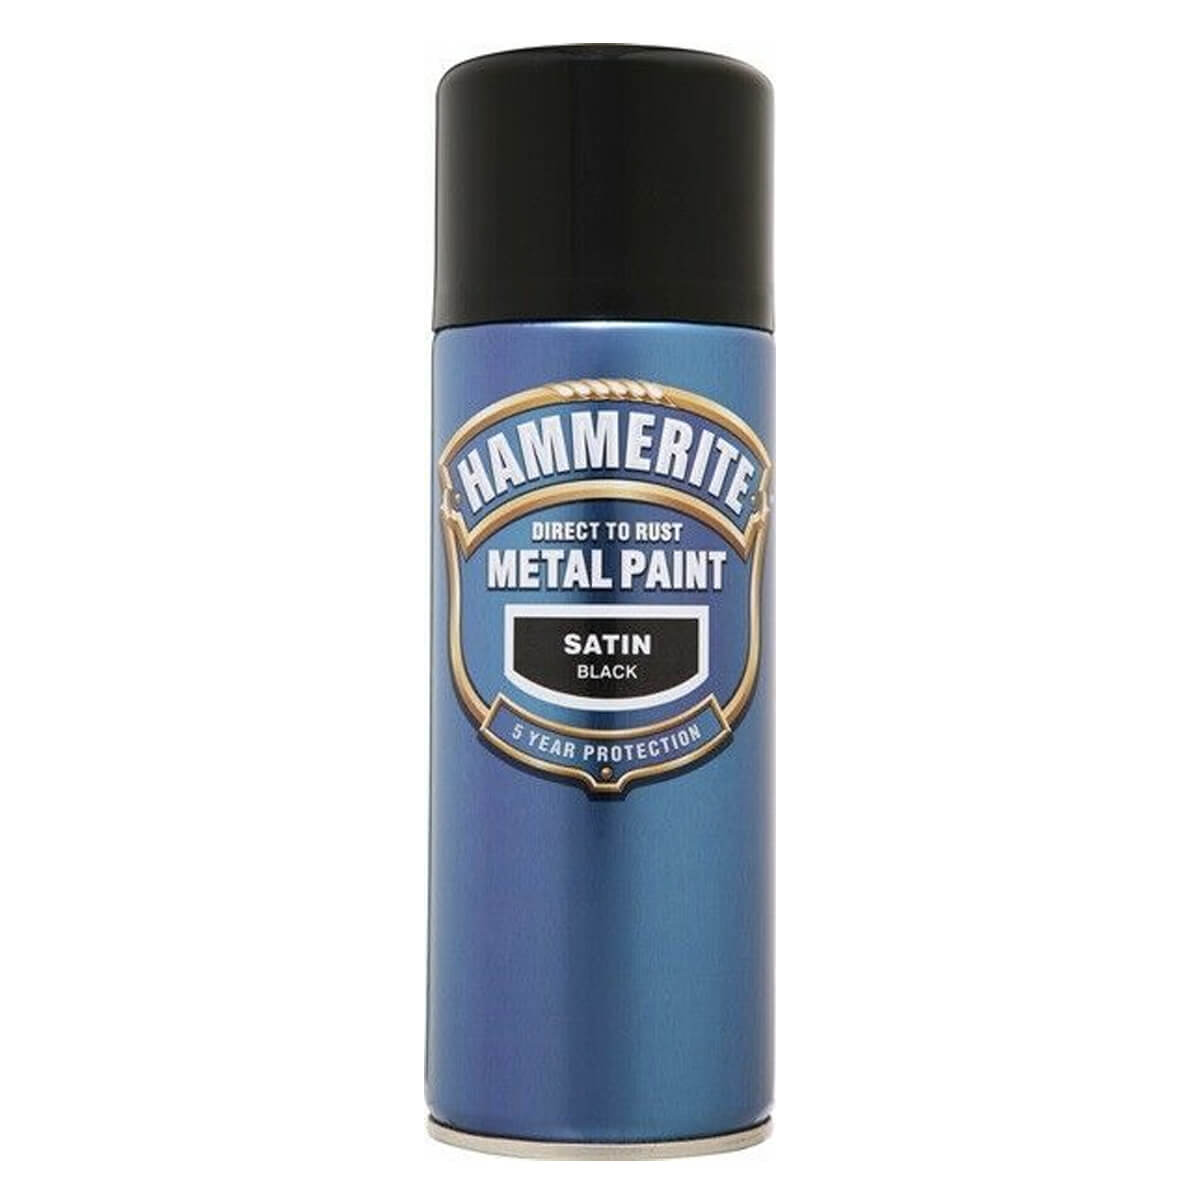 Hammerite Direct to Rust Metal Paint Aerosol Satin Finish (Black)